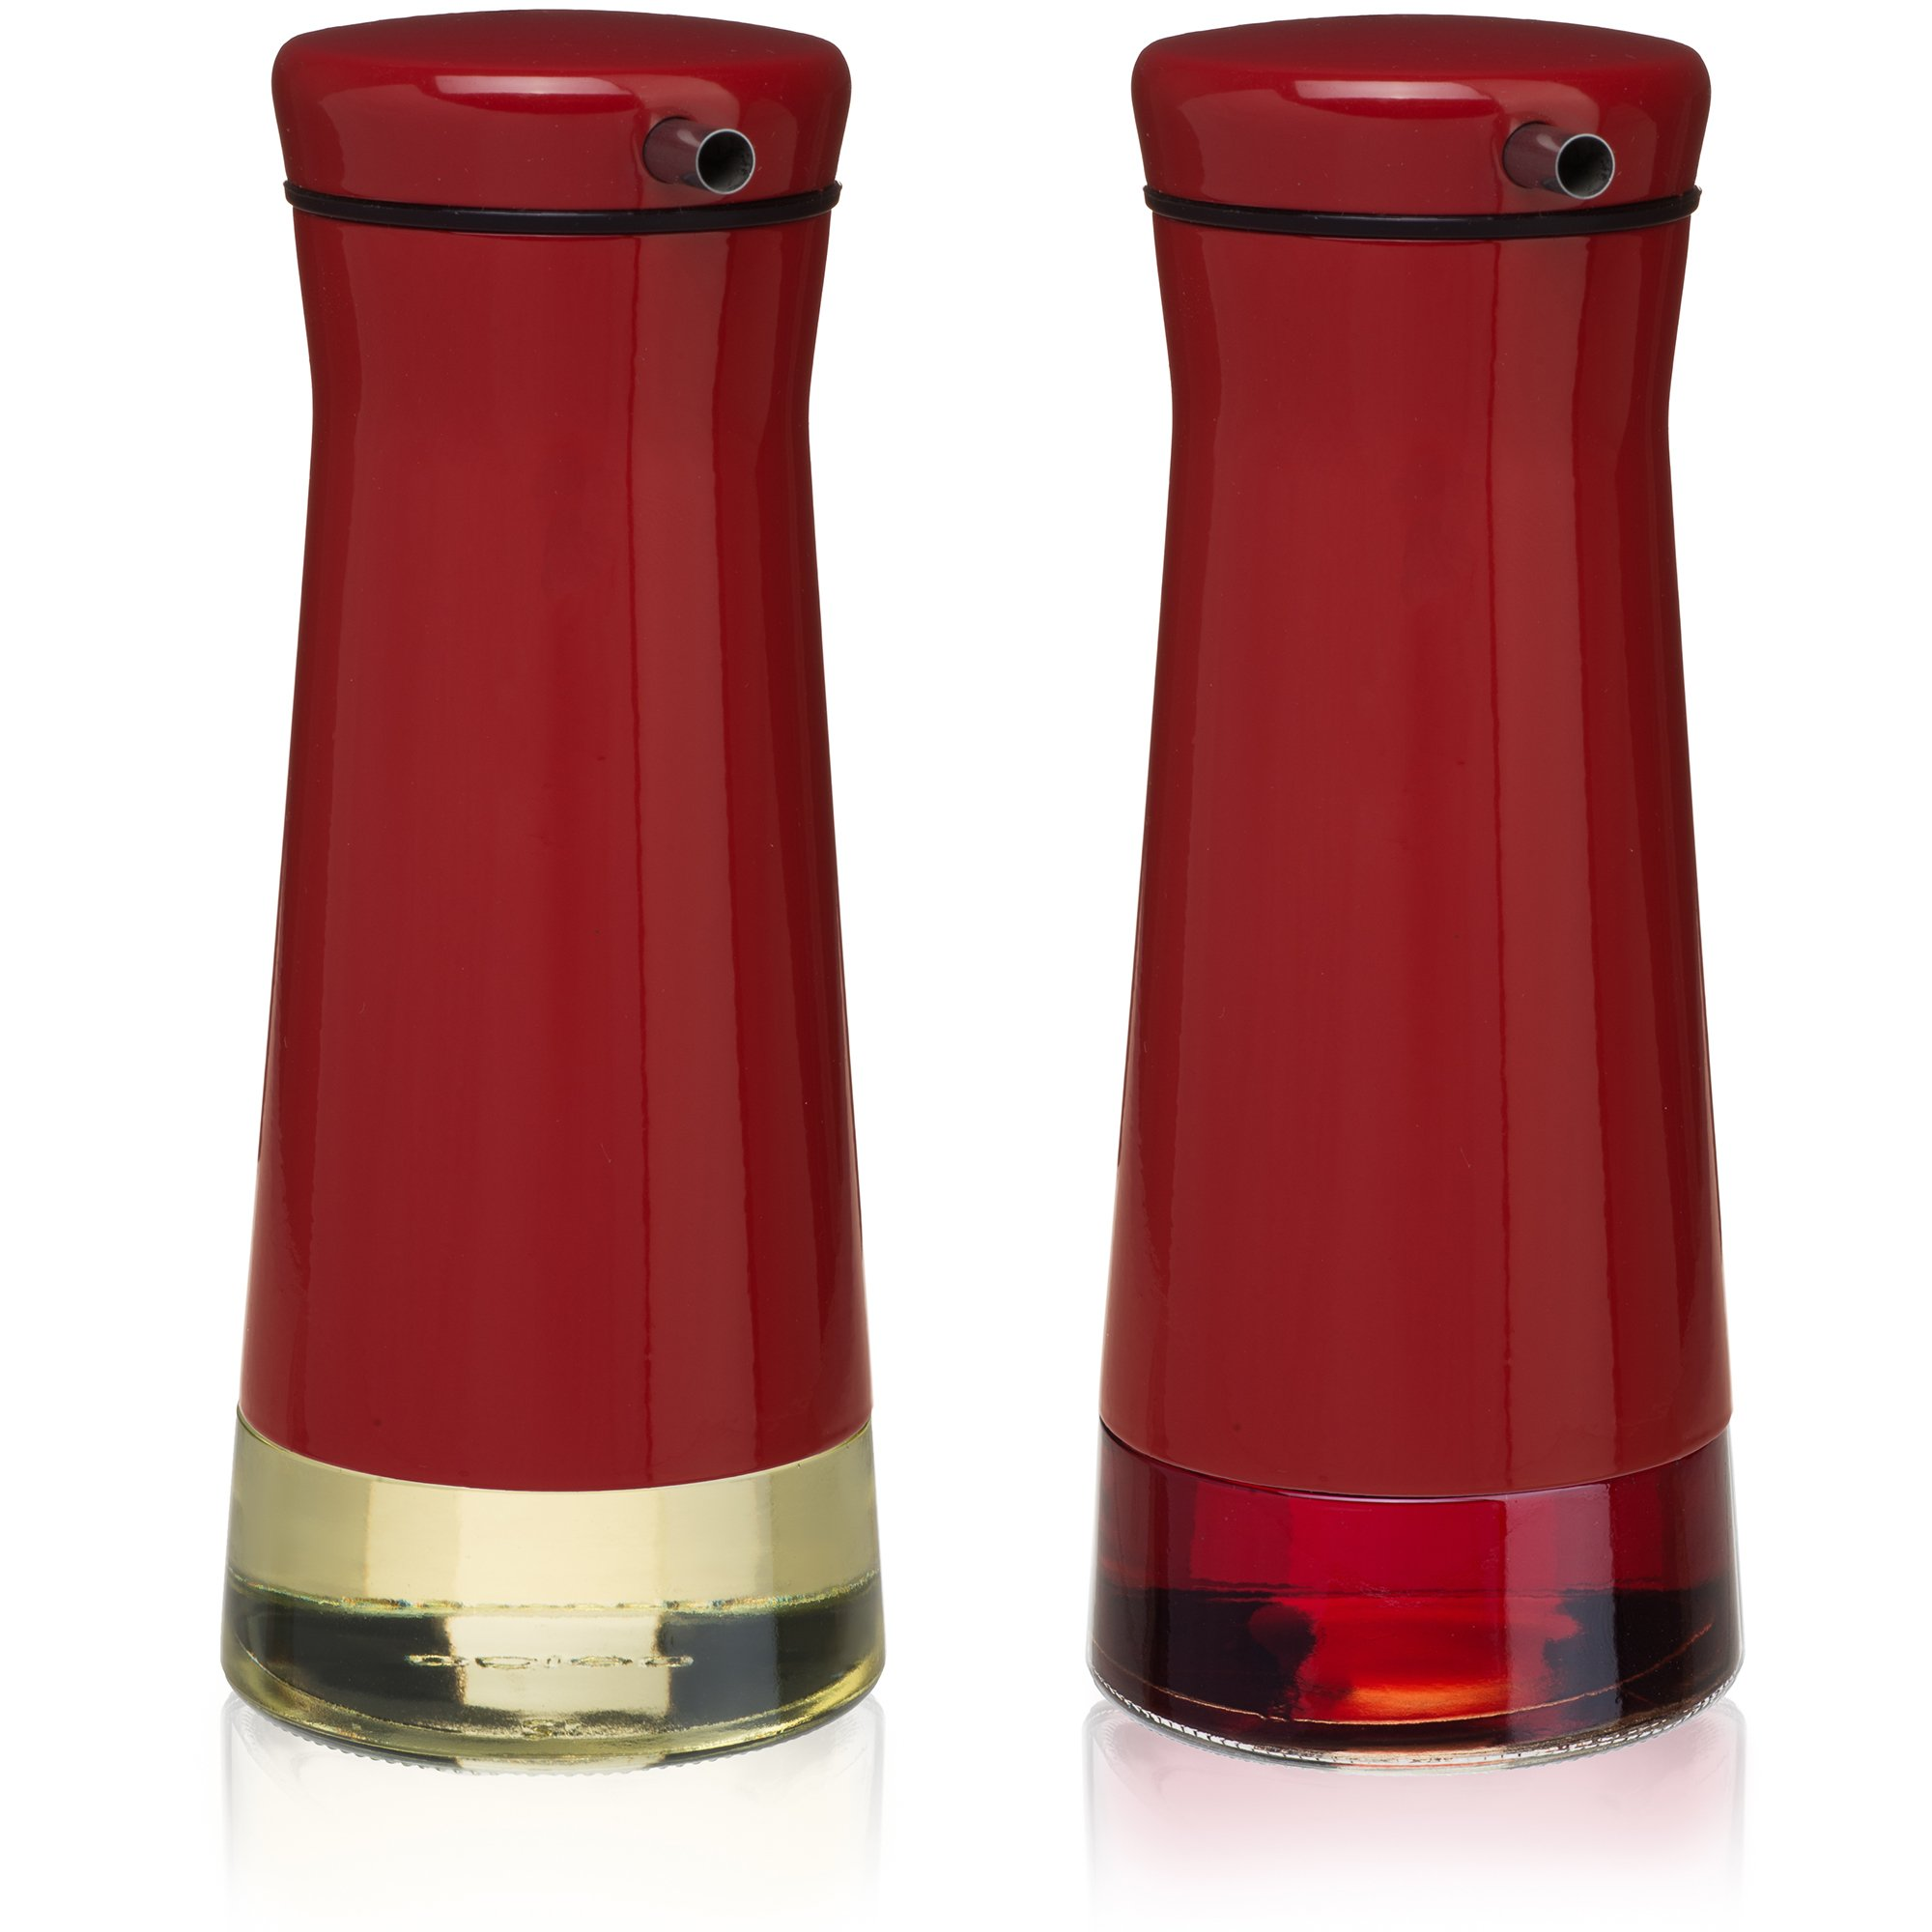 CHEFVANTAGE Olive Oil and Vinegar Cruet Dispenser Set with Elegant Glass Bottle and Drip Free Design - Red by CHEFVANTAGE